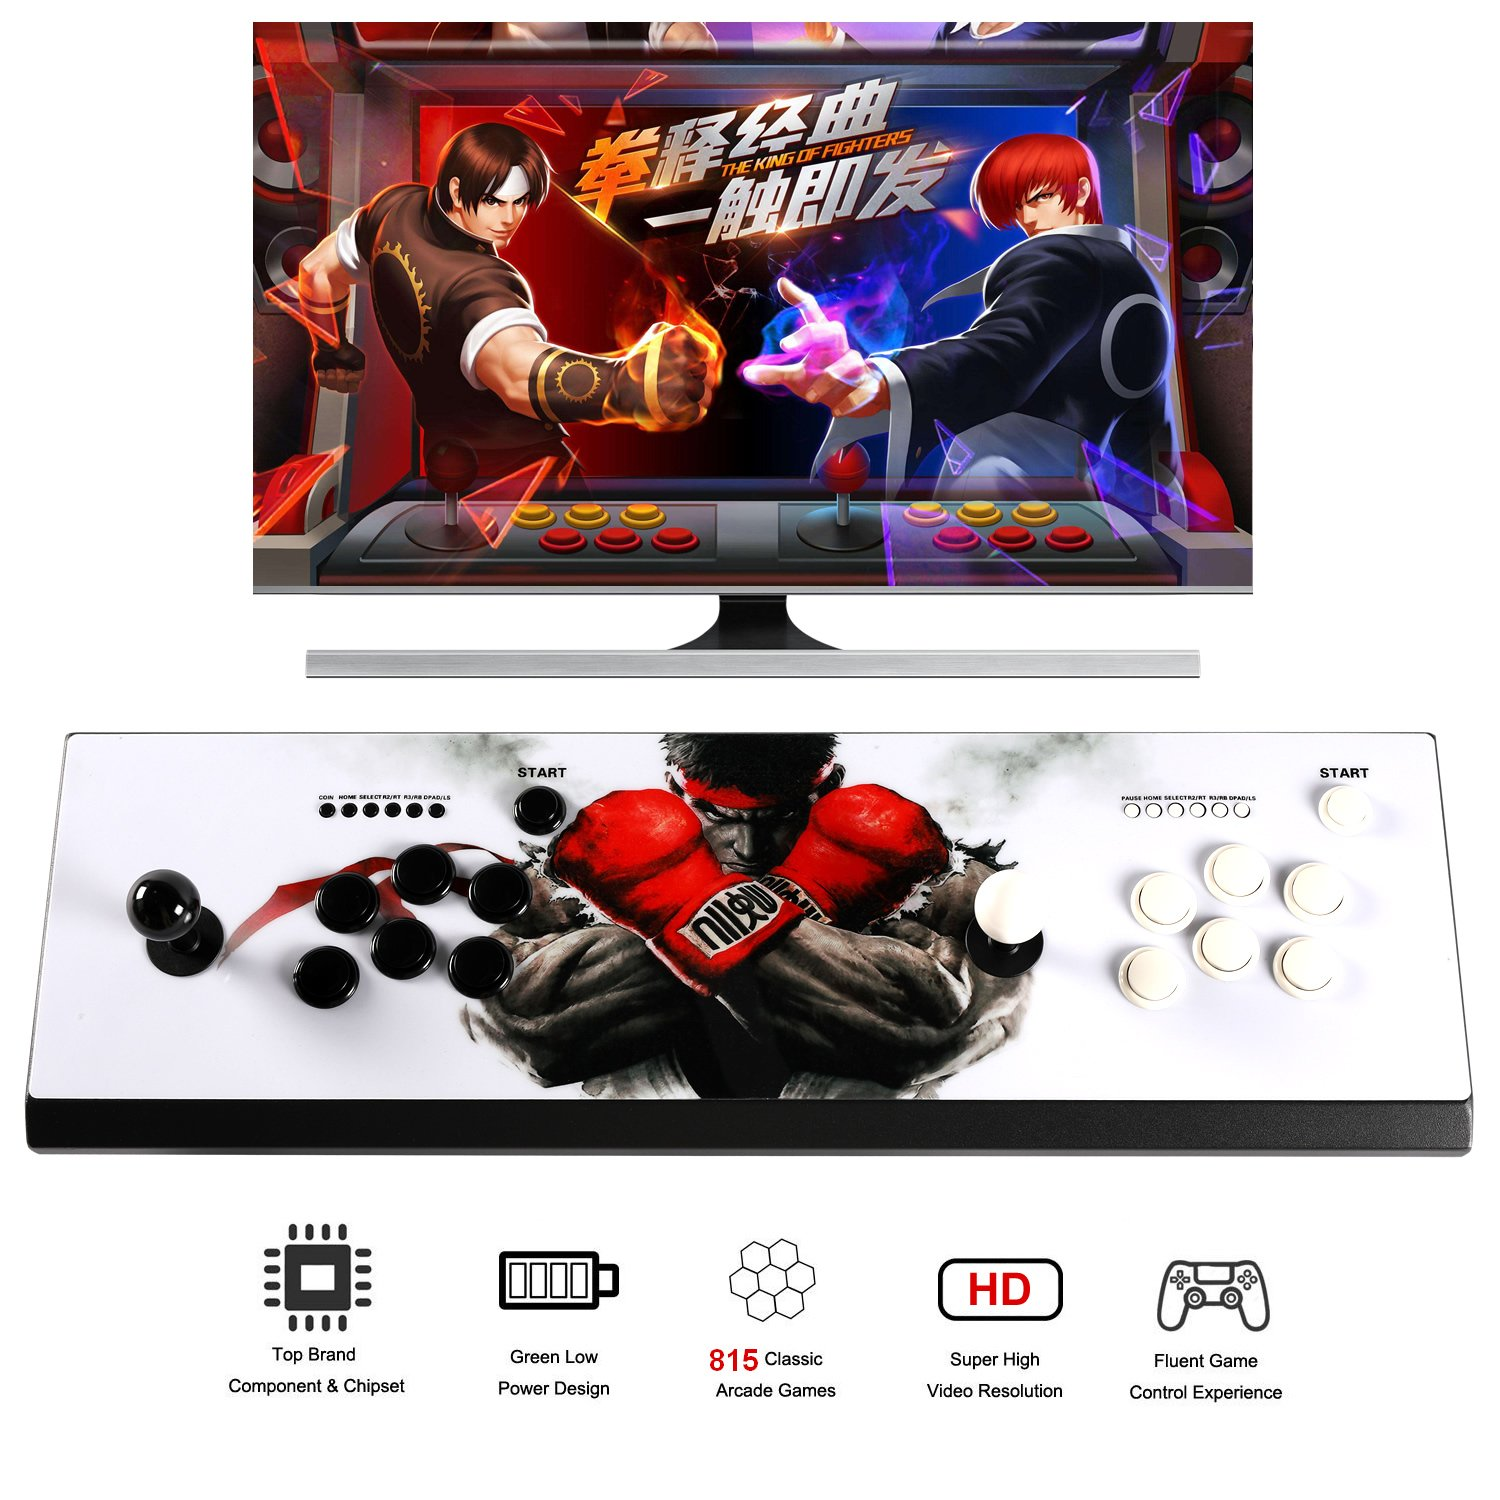 Easyget Arcade Game Console Ultra Slim Metal Double Stick - 815 Classic Video Games Machine - 2 Players Pandora's Box 4S Plus Arcade Joystick for Computer / Projector / Screen /TV HDMI VGA Output